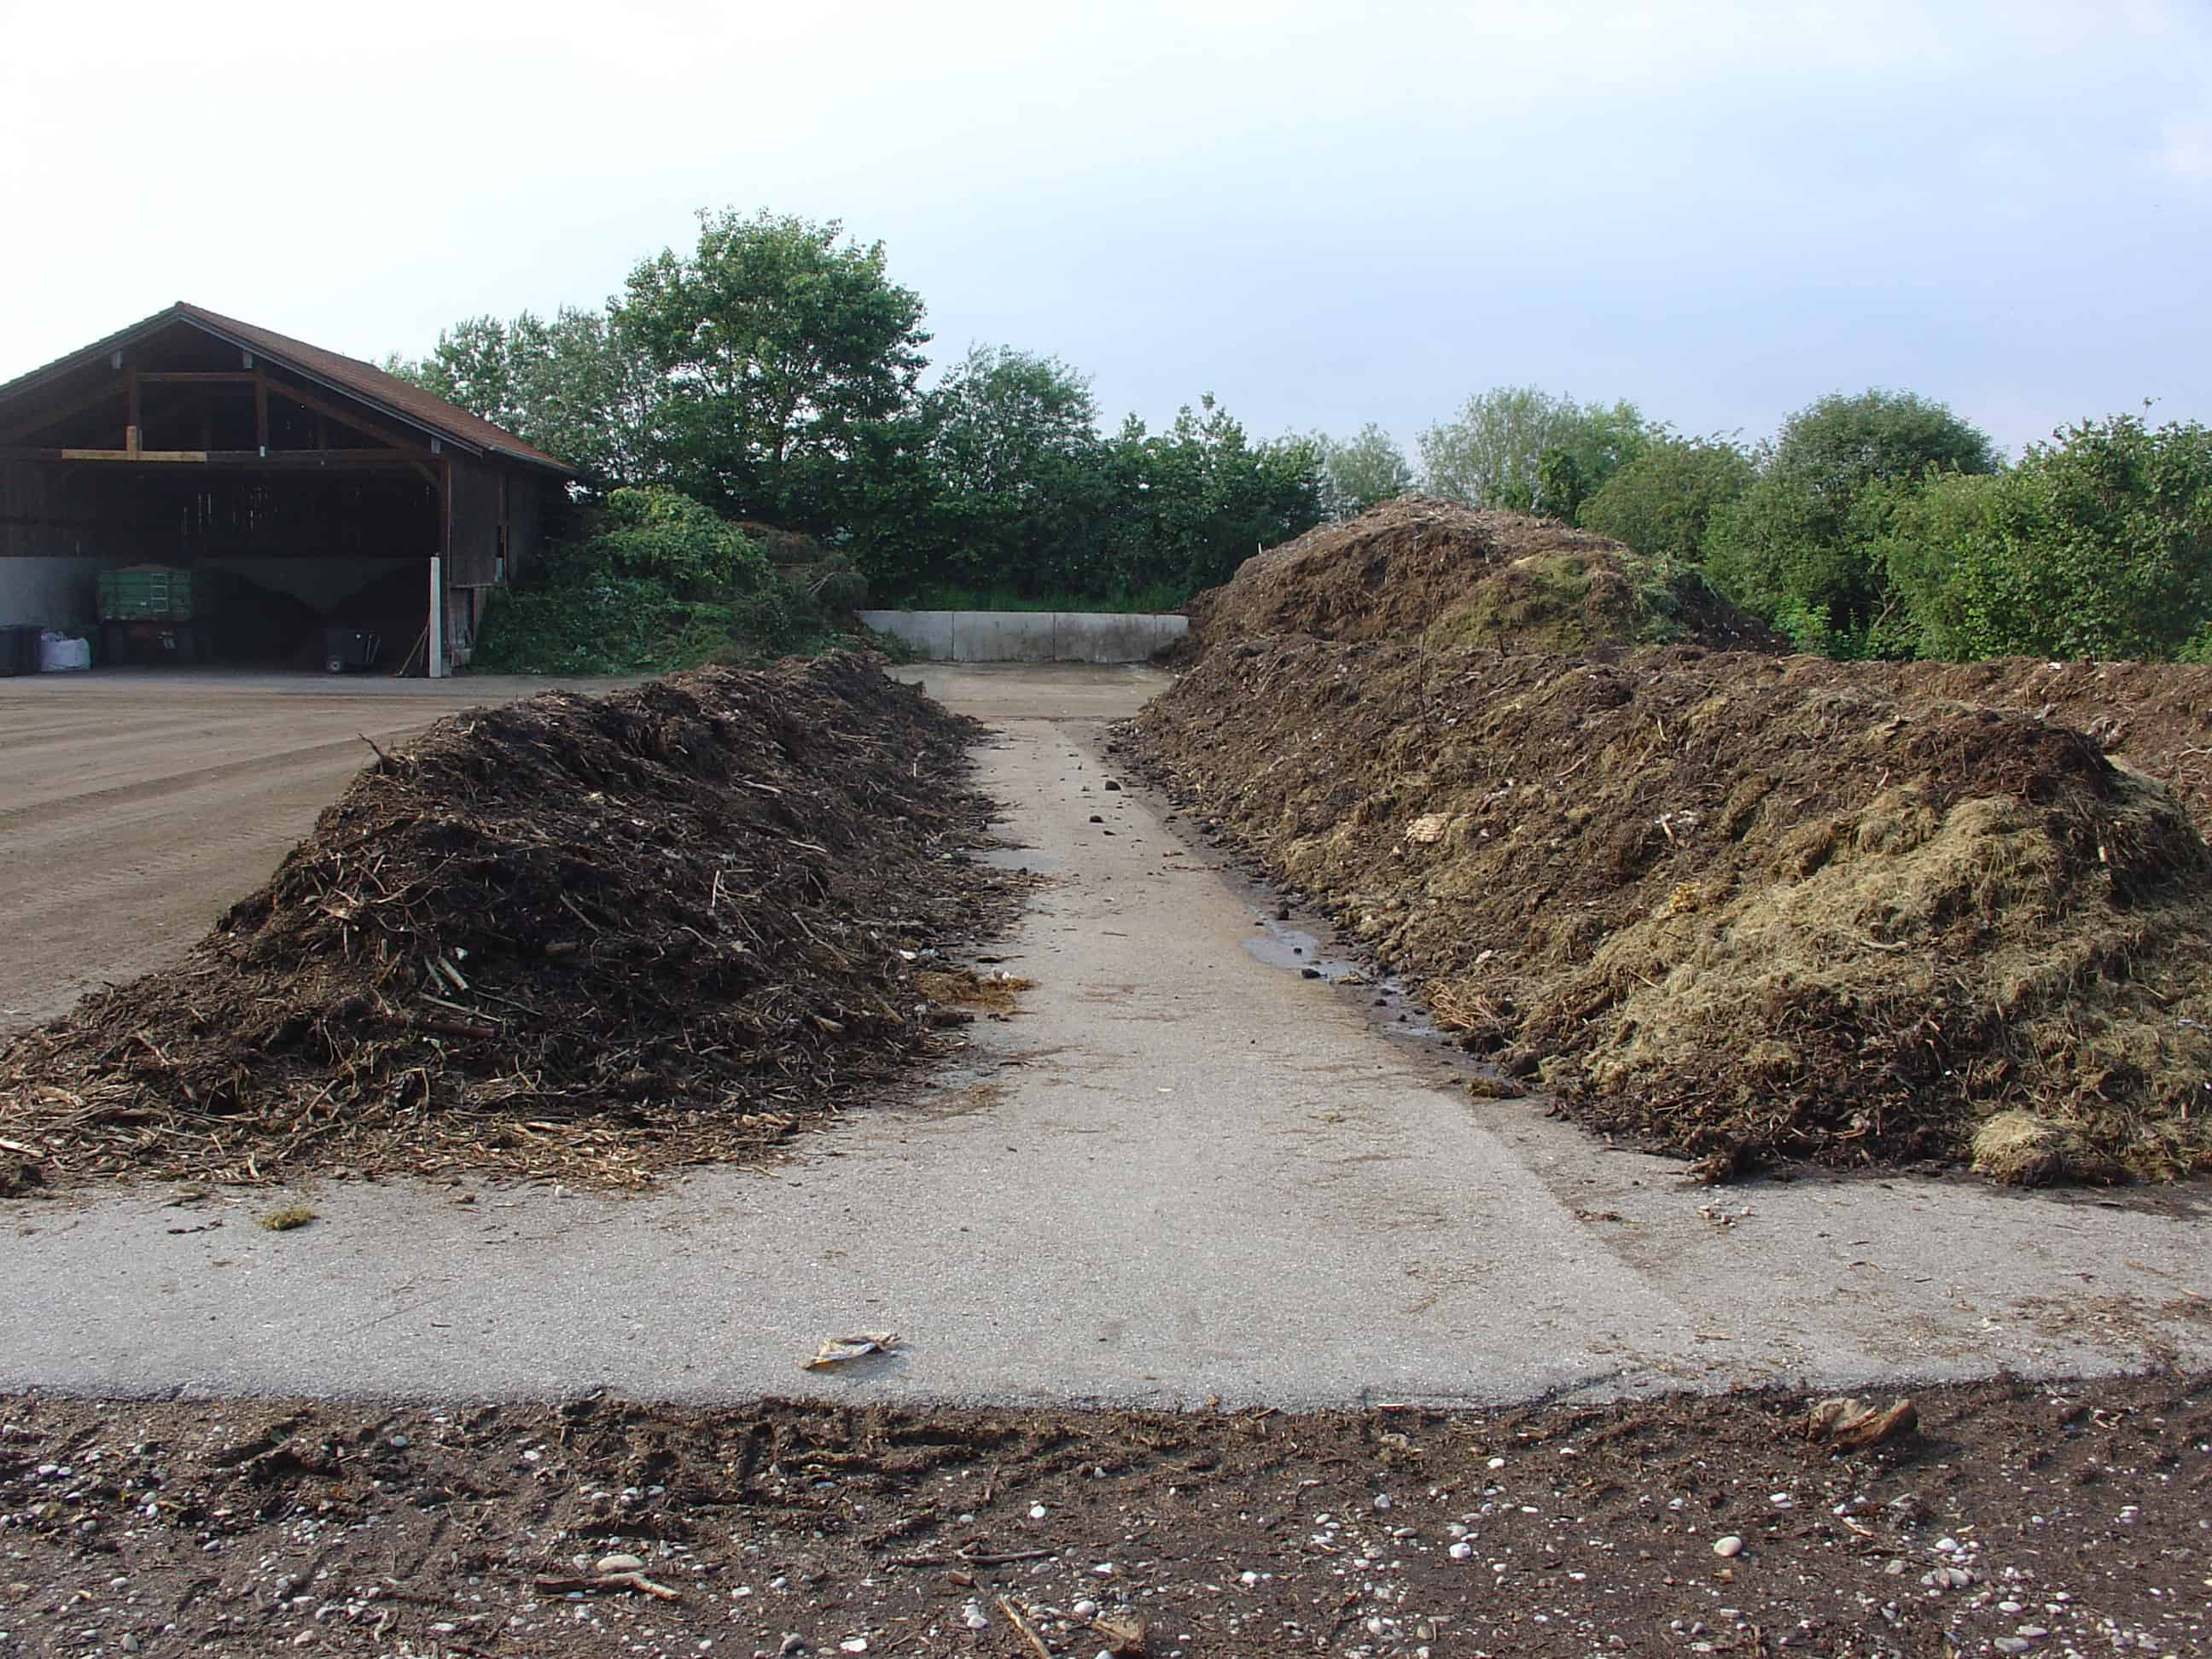 a community composting site in germany